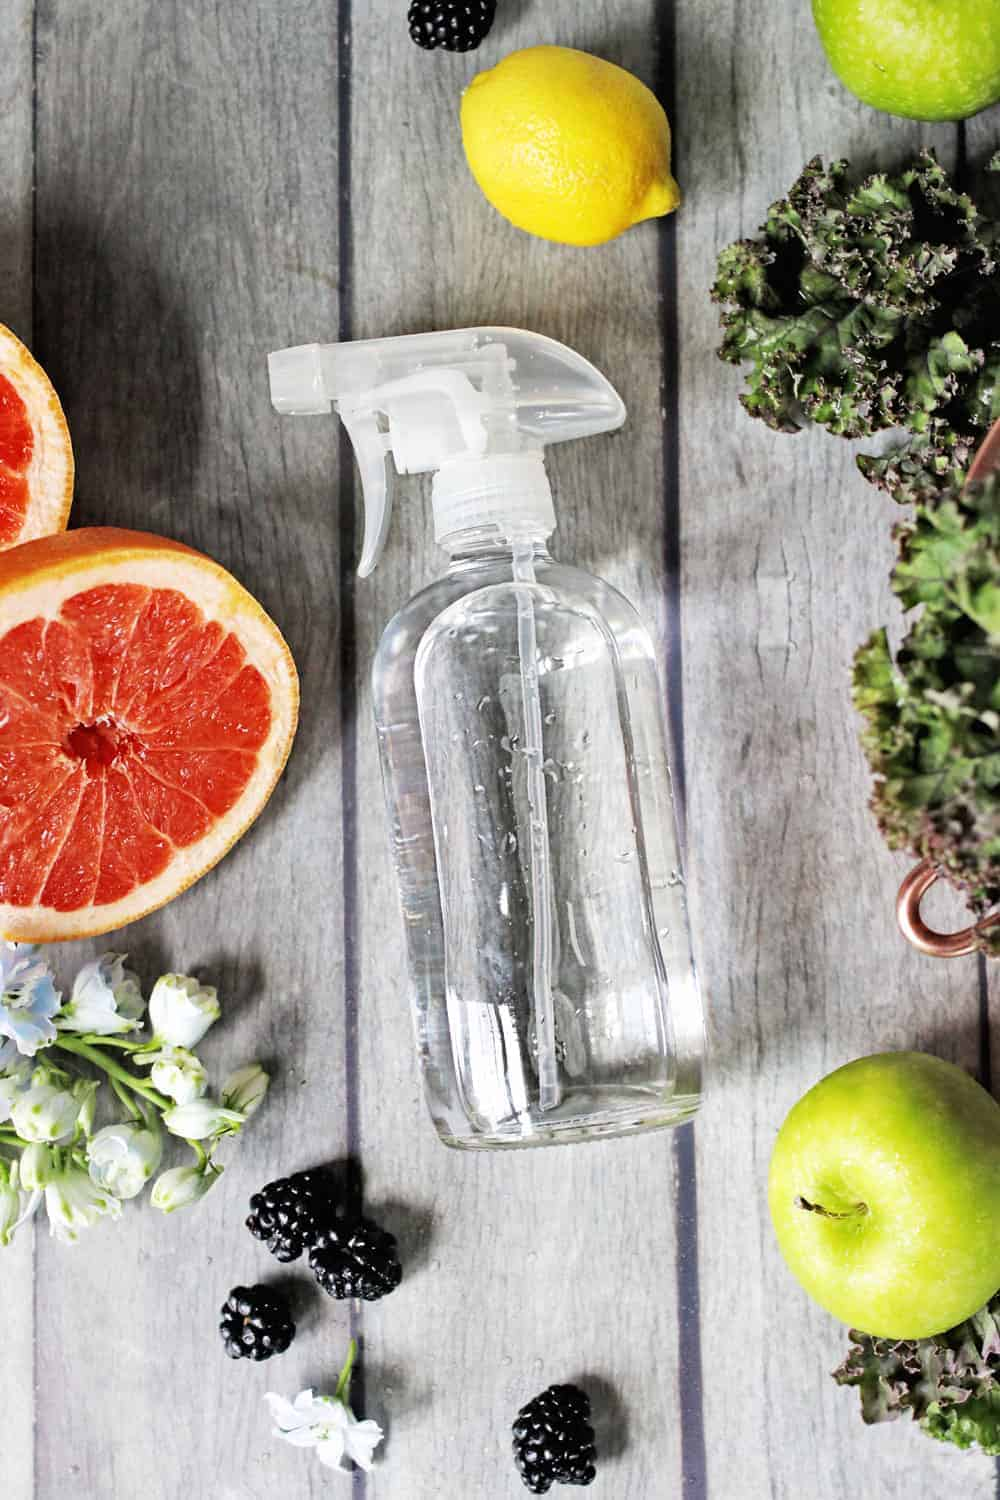 A Simple 4-Ingredient Produce Wash You Can Make at Home